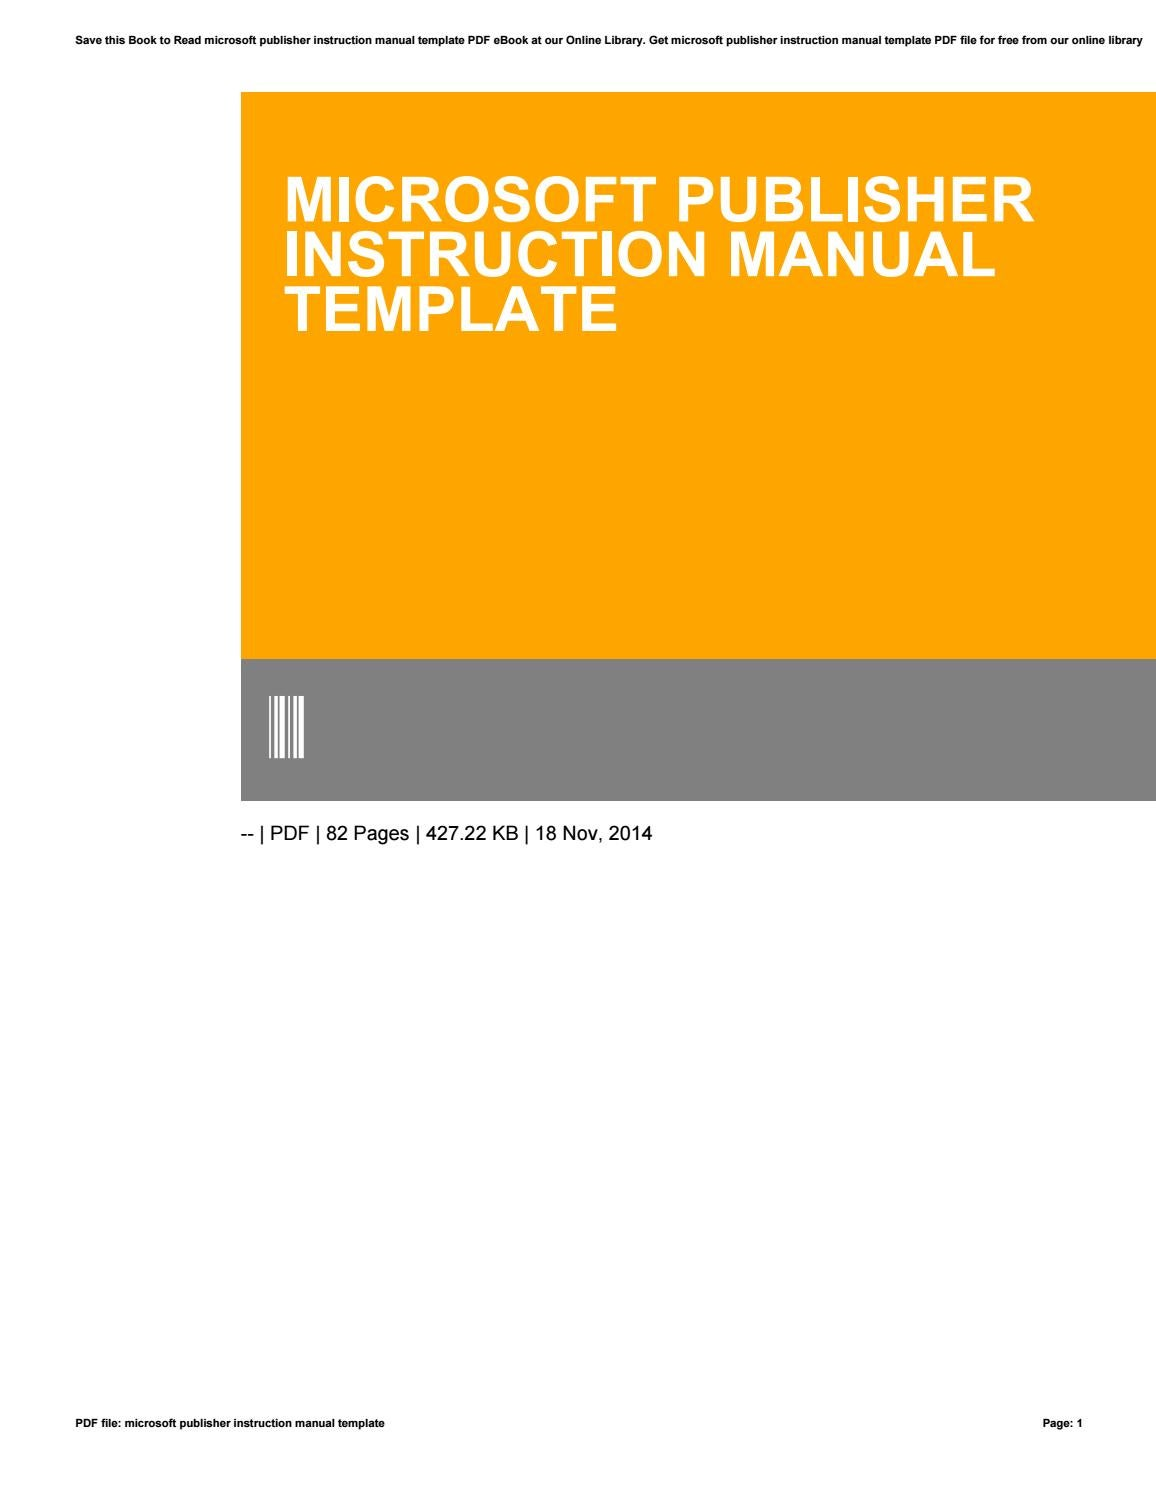 Instruction Booklet Template Ballast Control Operator